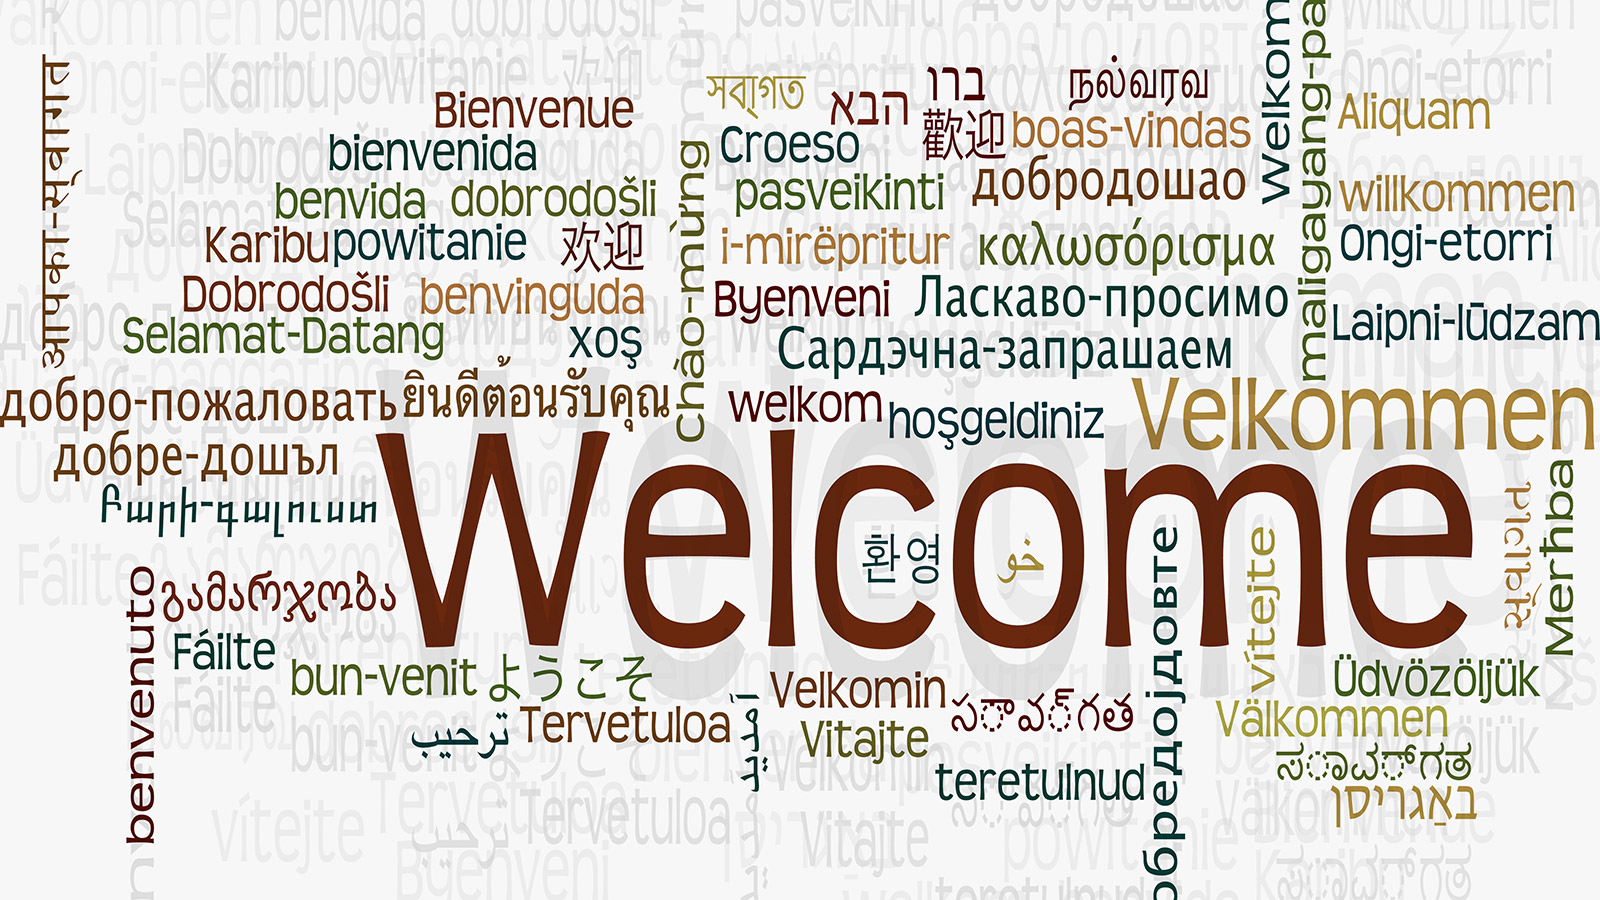 A word cloud of different ways to say welcome in many different languages.